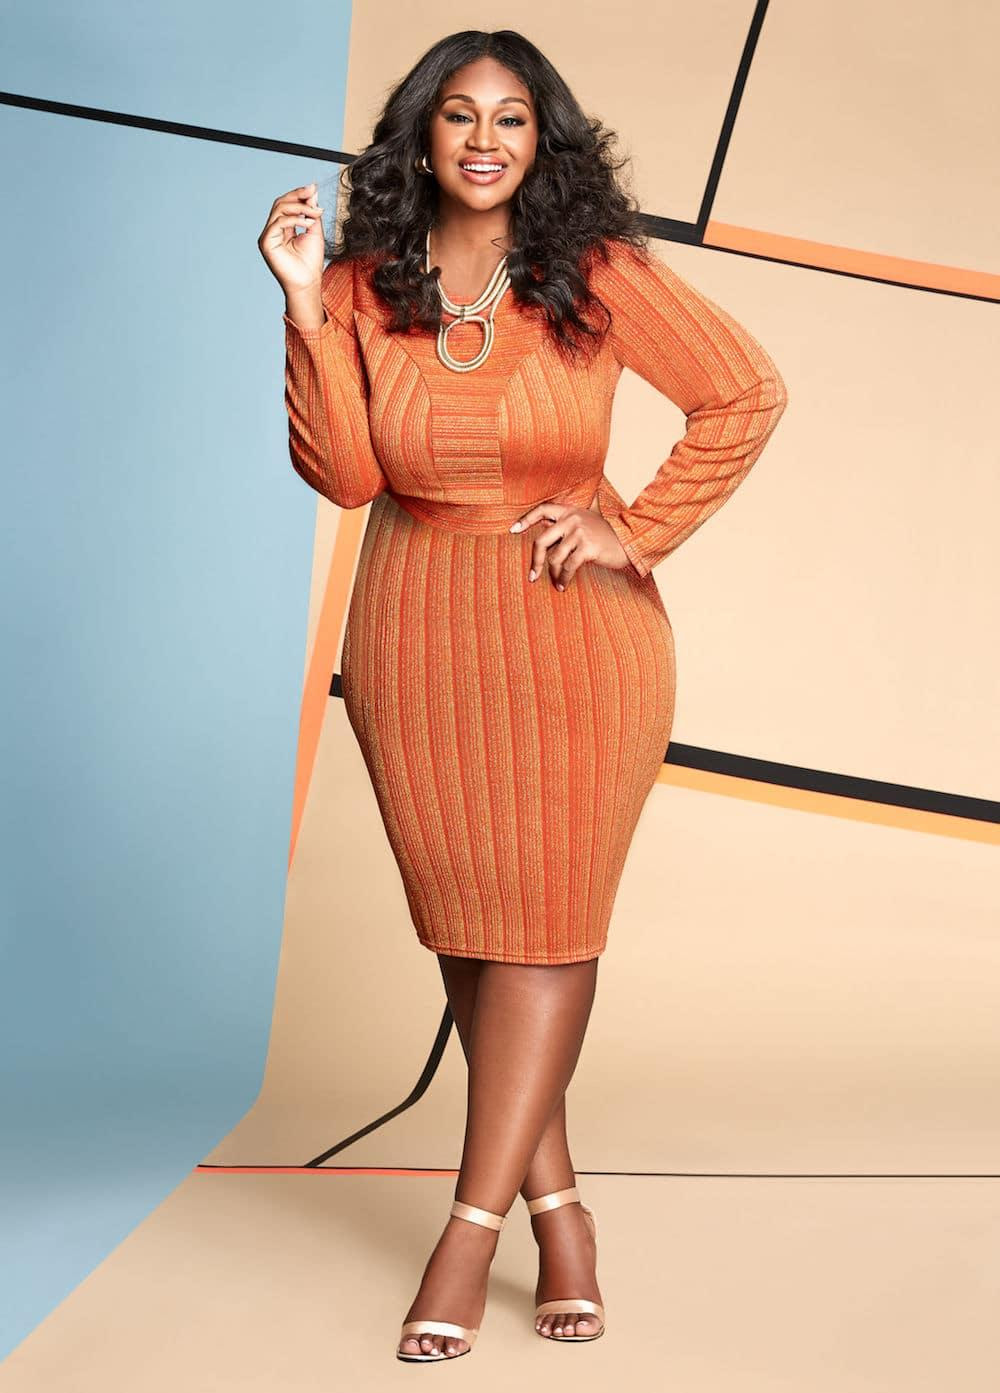 4ashleystewartsexyplussizeclothing  advice from